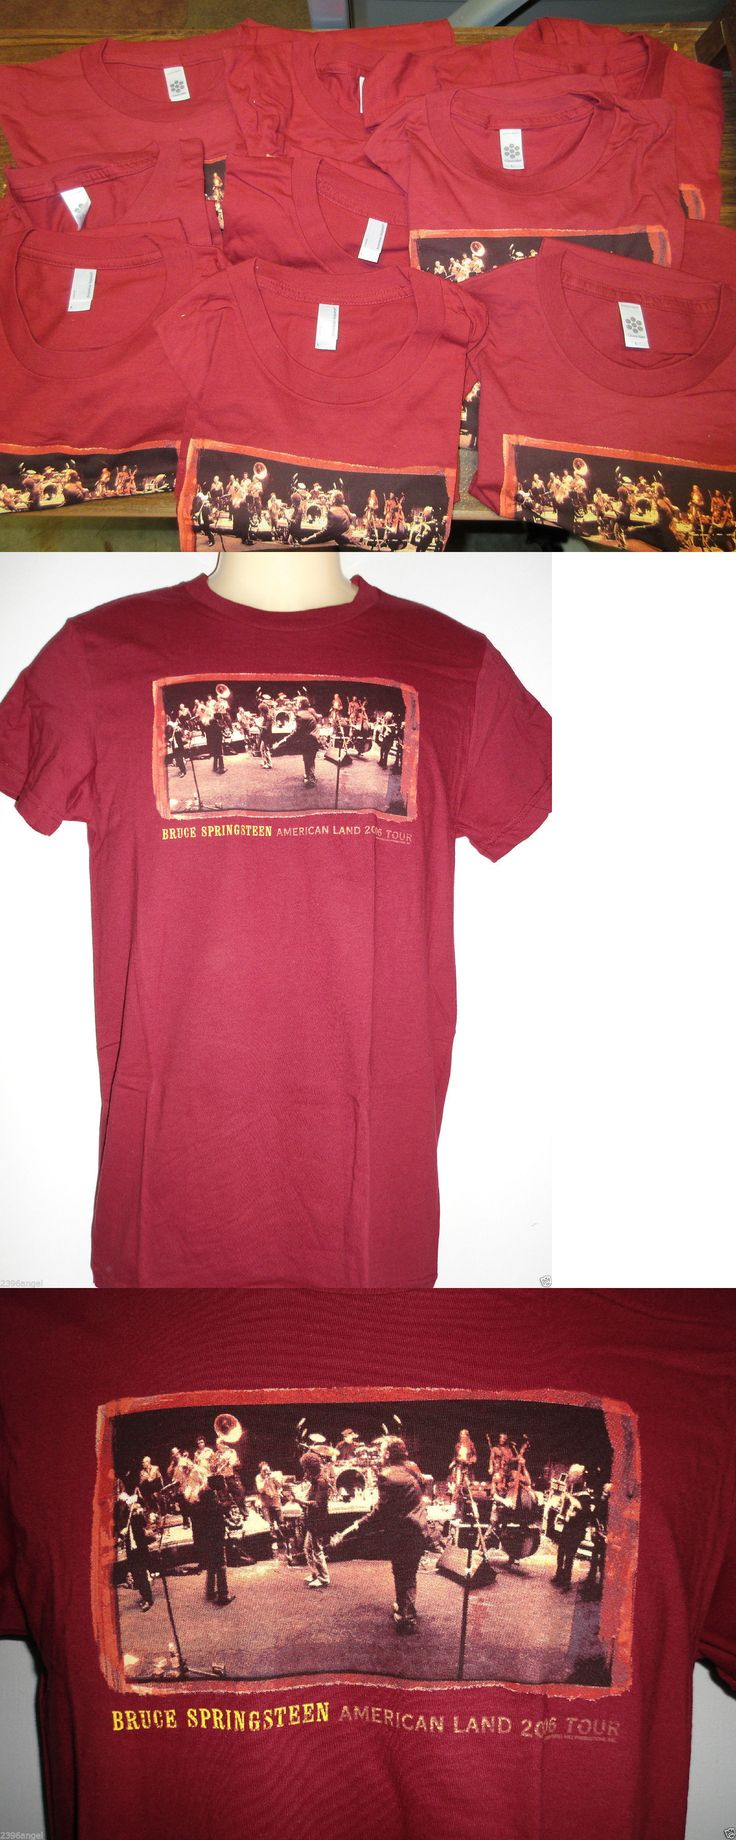 Girls 41965: New - 50X Wholesale Lot Bruce Springsteen Concert Band Music T-Shirt Girls Large -> BUY IT NOW ONLY: $129.99 on eBay!